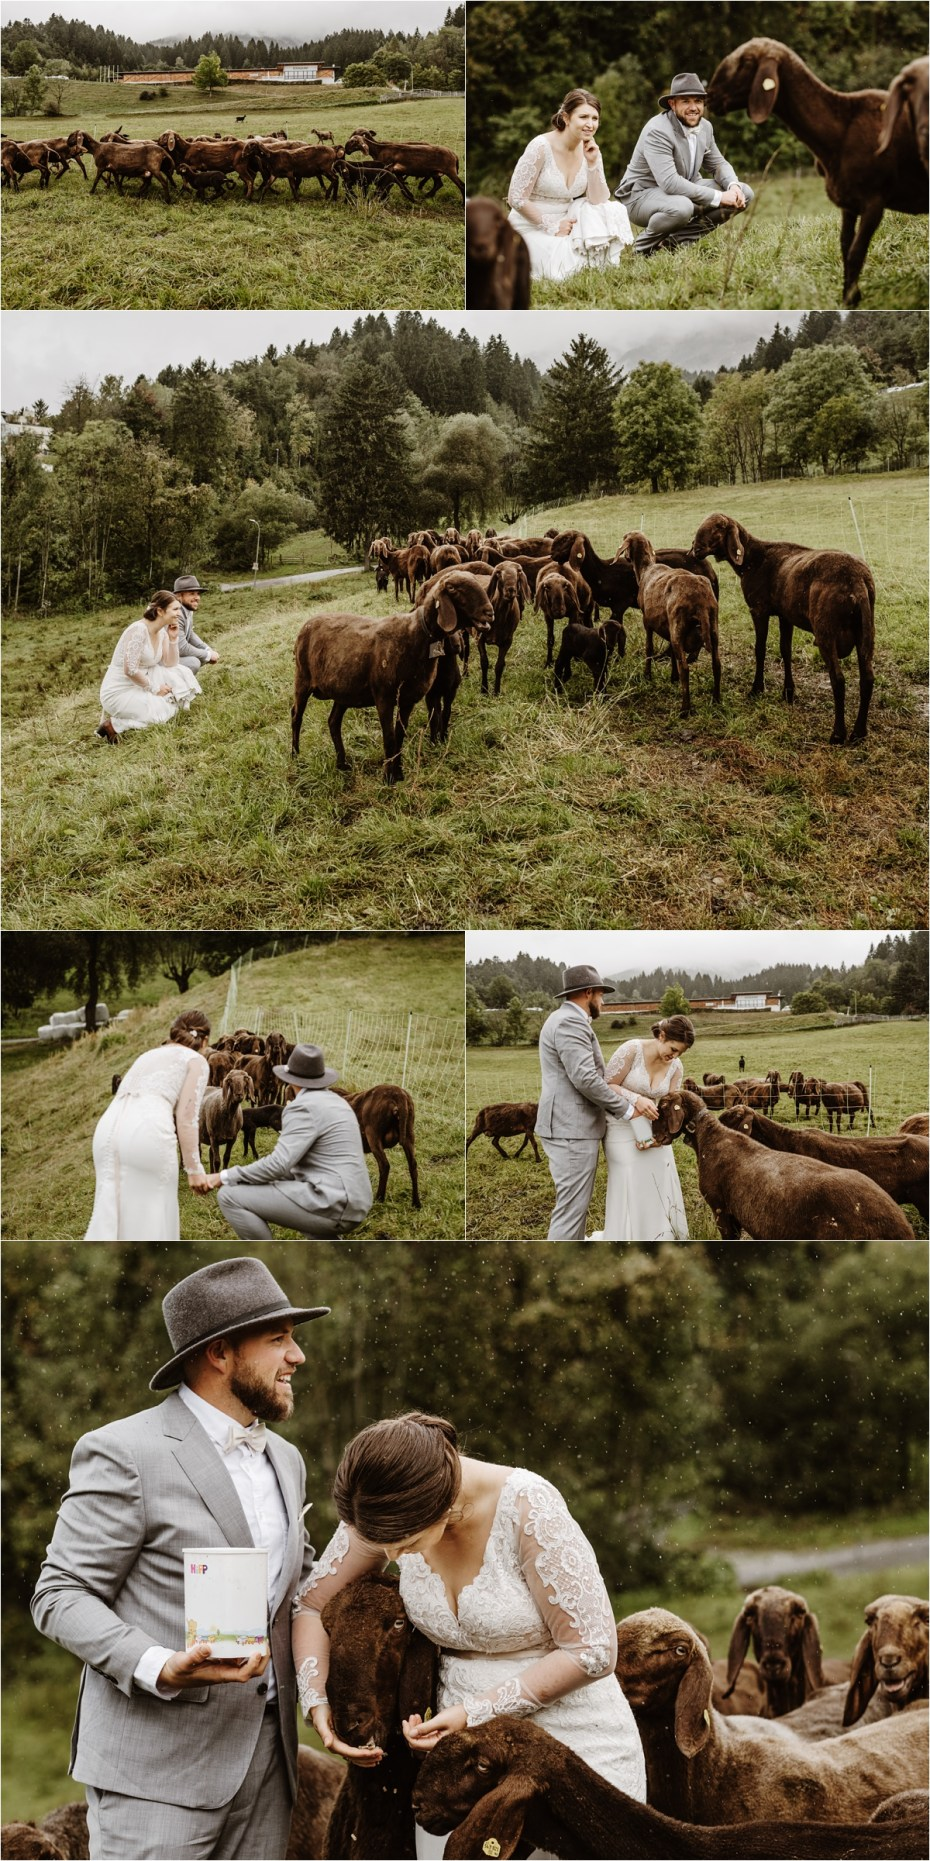 Bride and groom in a field of sheep after their Innsbruck elopement ceremony. Photos by Wild Connections Photography